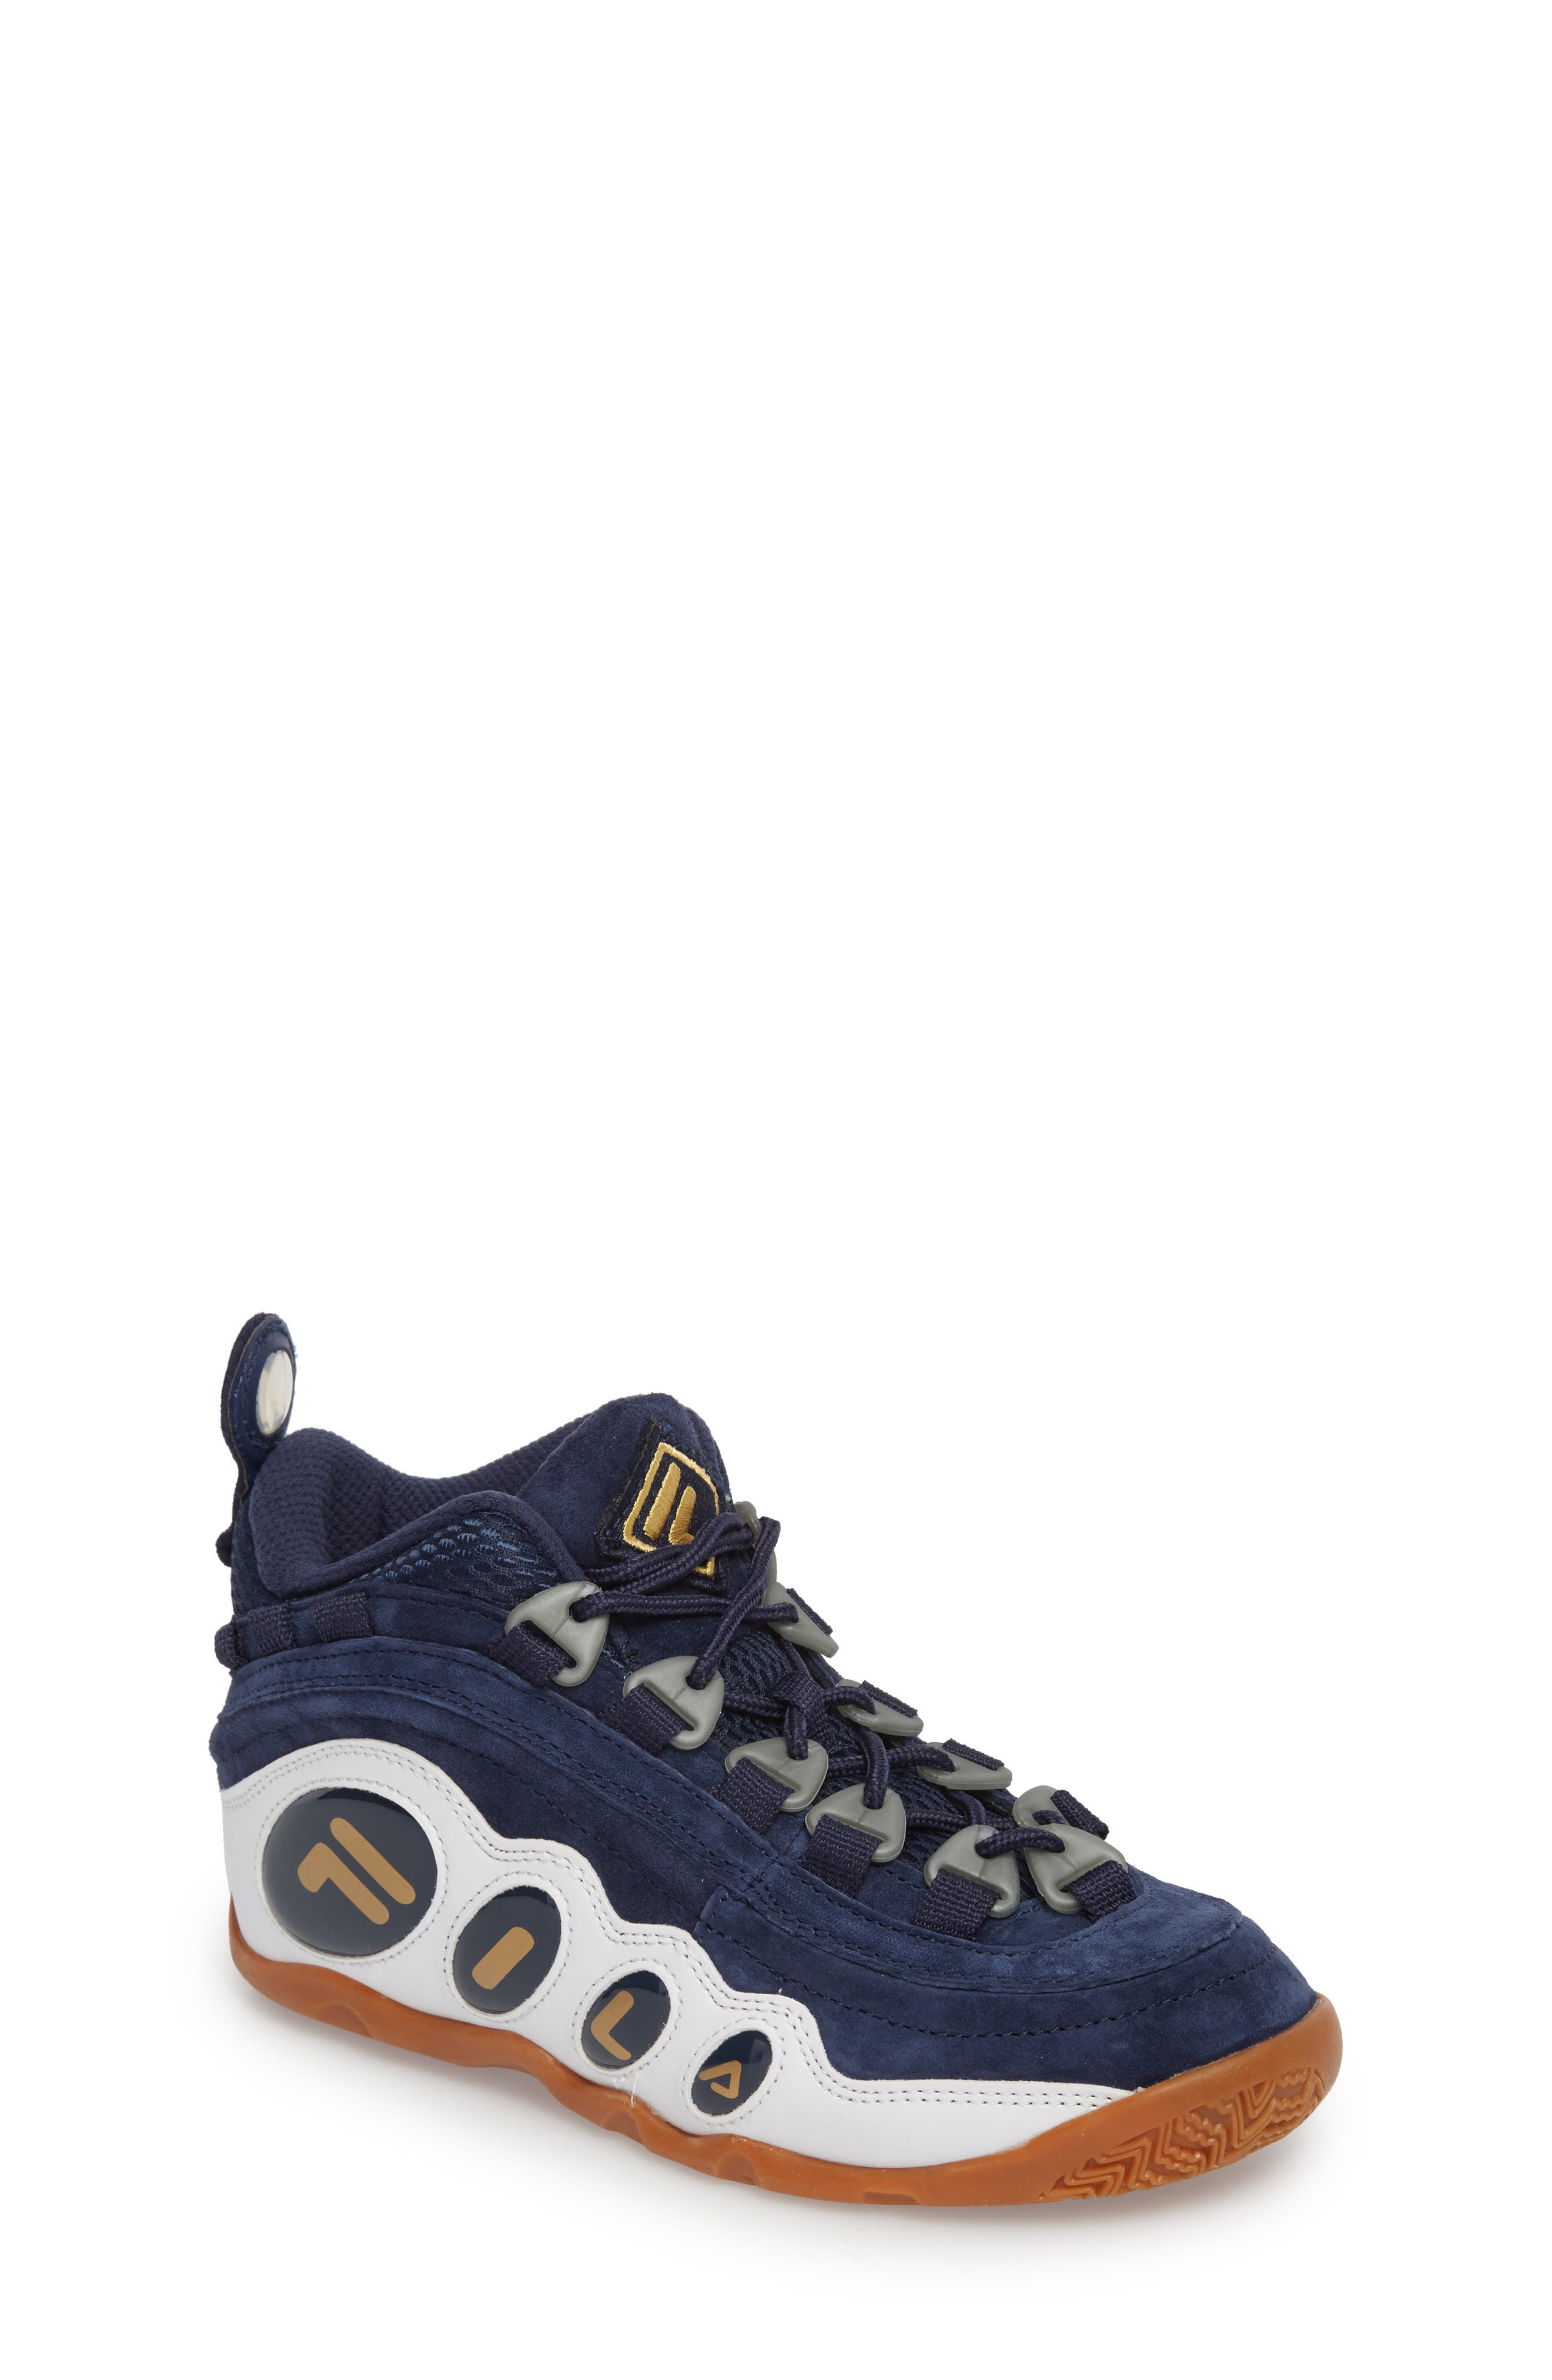 Bubbles Mid Top Sneaker Boot,                         Main,                         color, NAVY/ GOLD/ WHITE